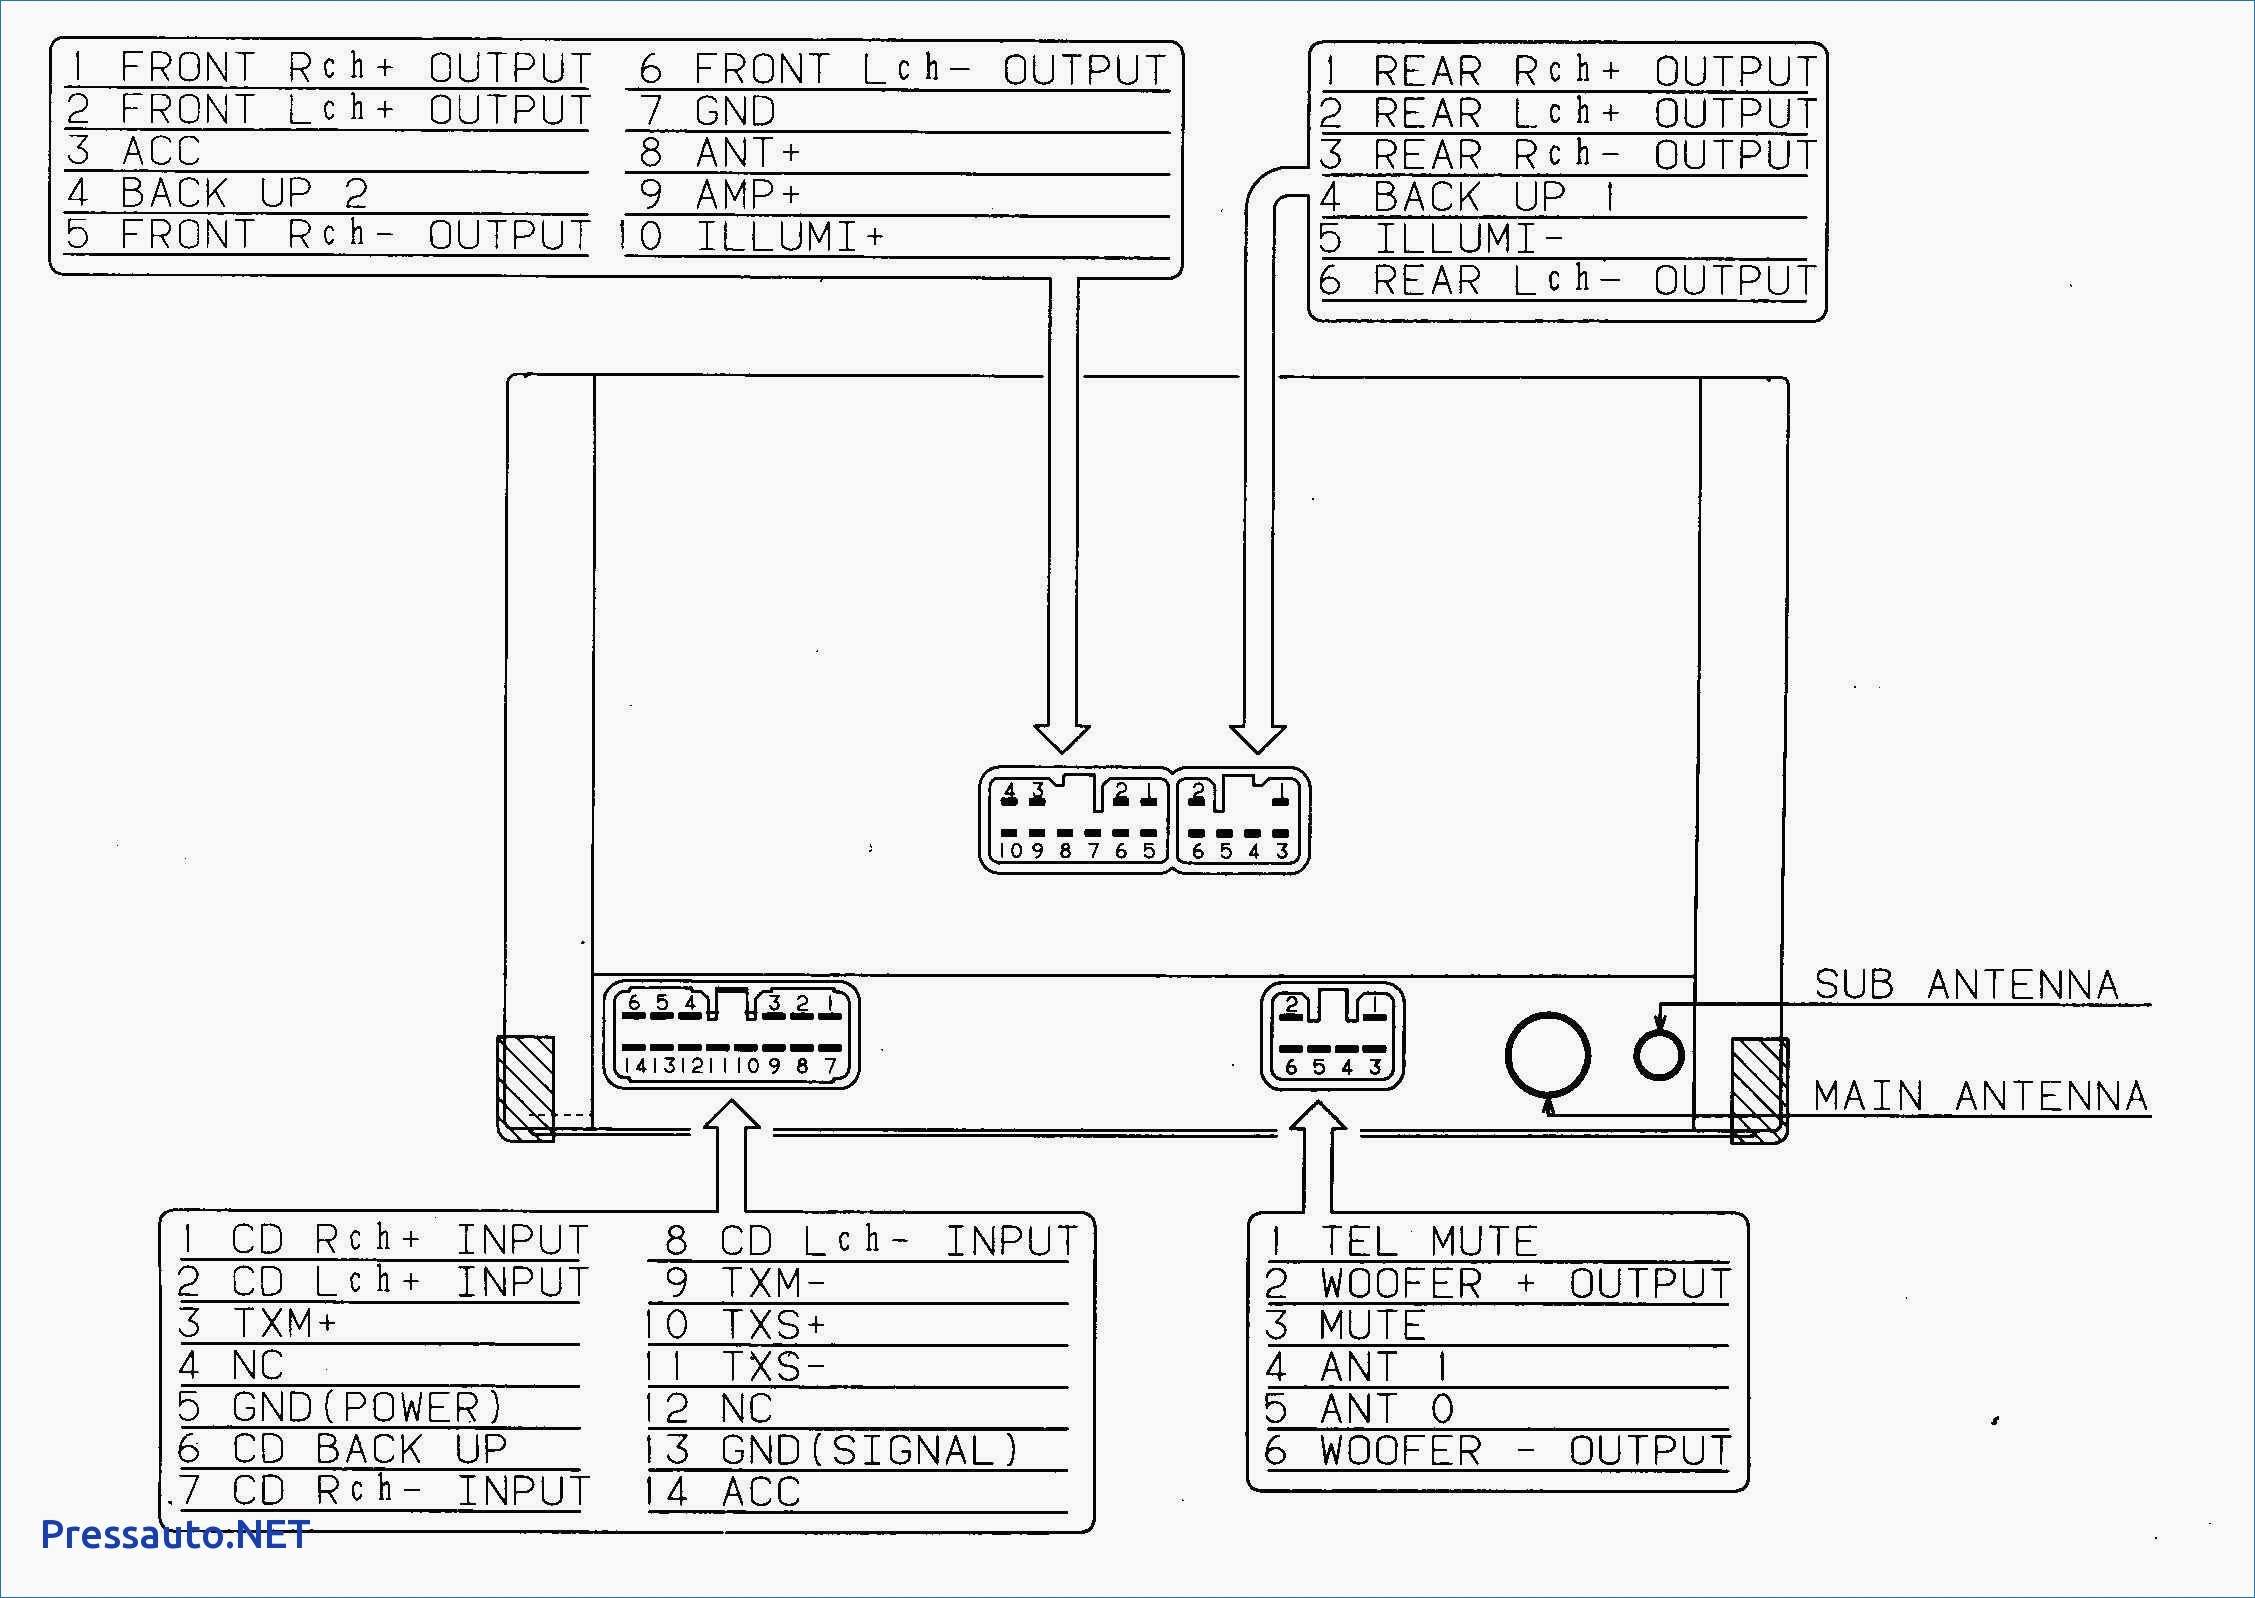 Wiring Diagrams for Pioneer Car Stereos Wire Harness Pioneer Avic D3 Double Din Navigation Fancy N2 Wiring Of Wiring Diagrams for Pioneer Car Stereos